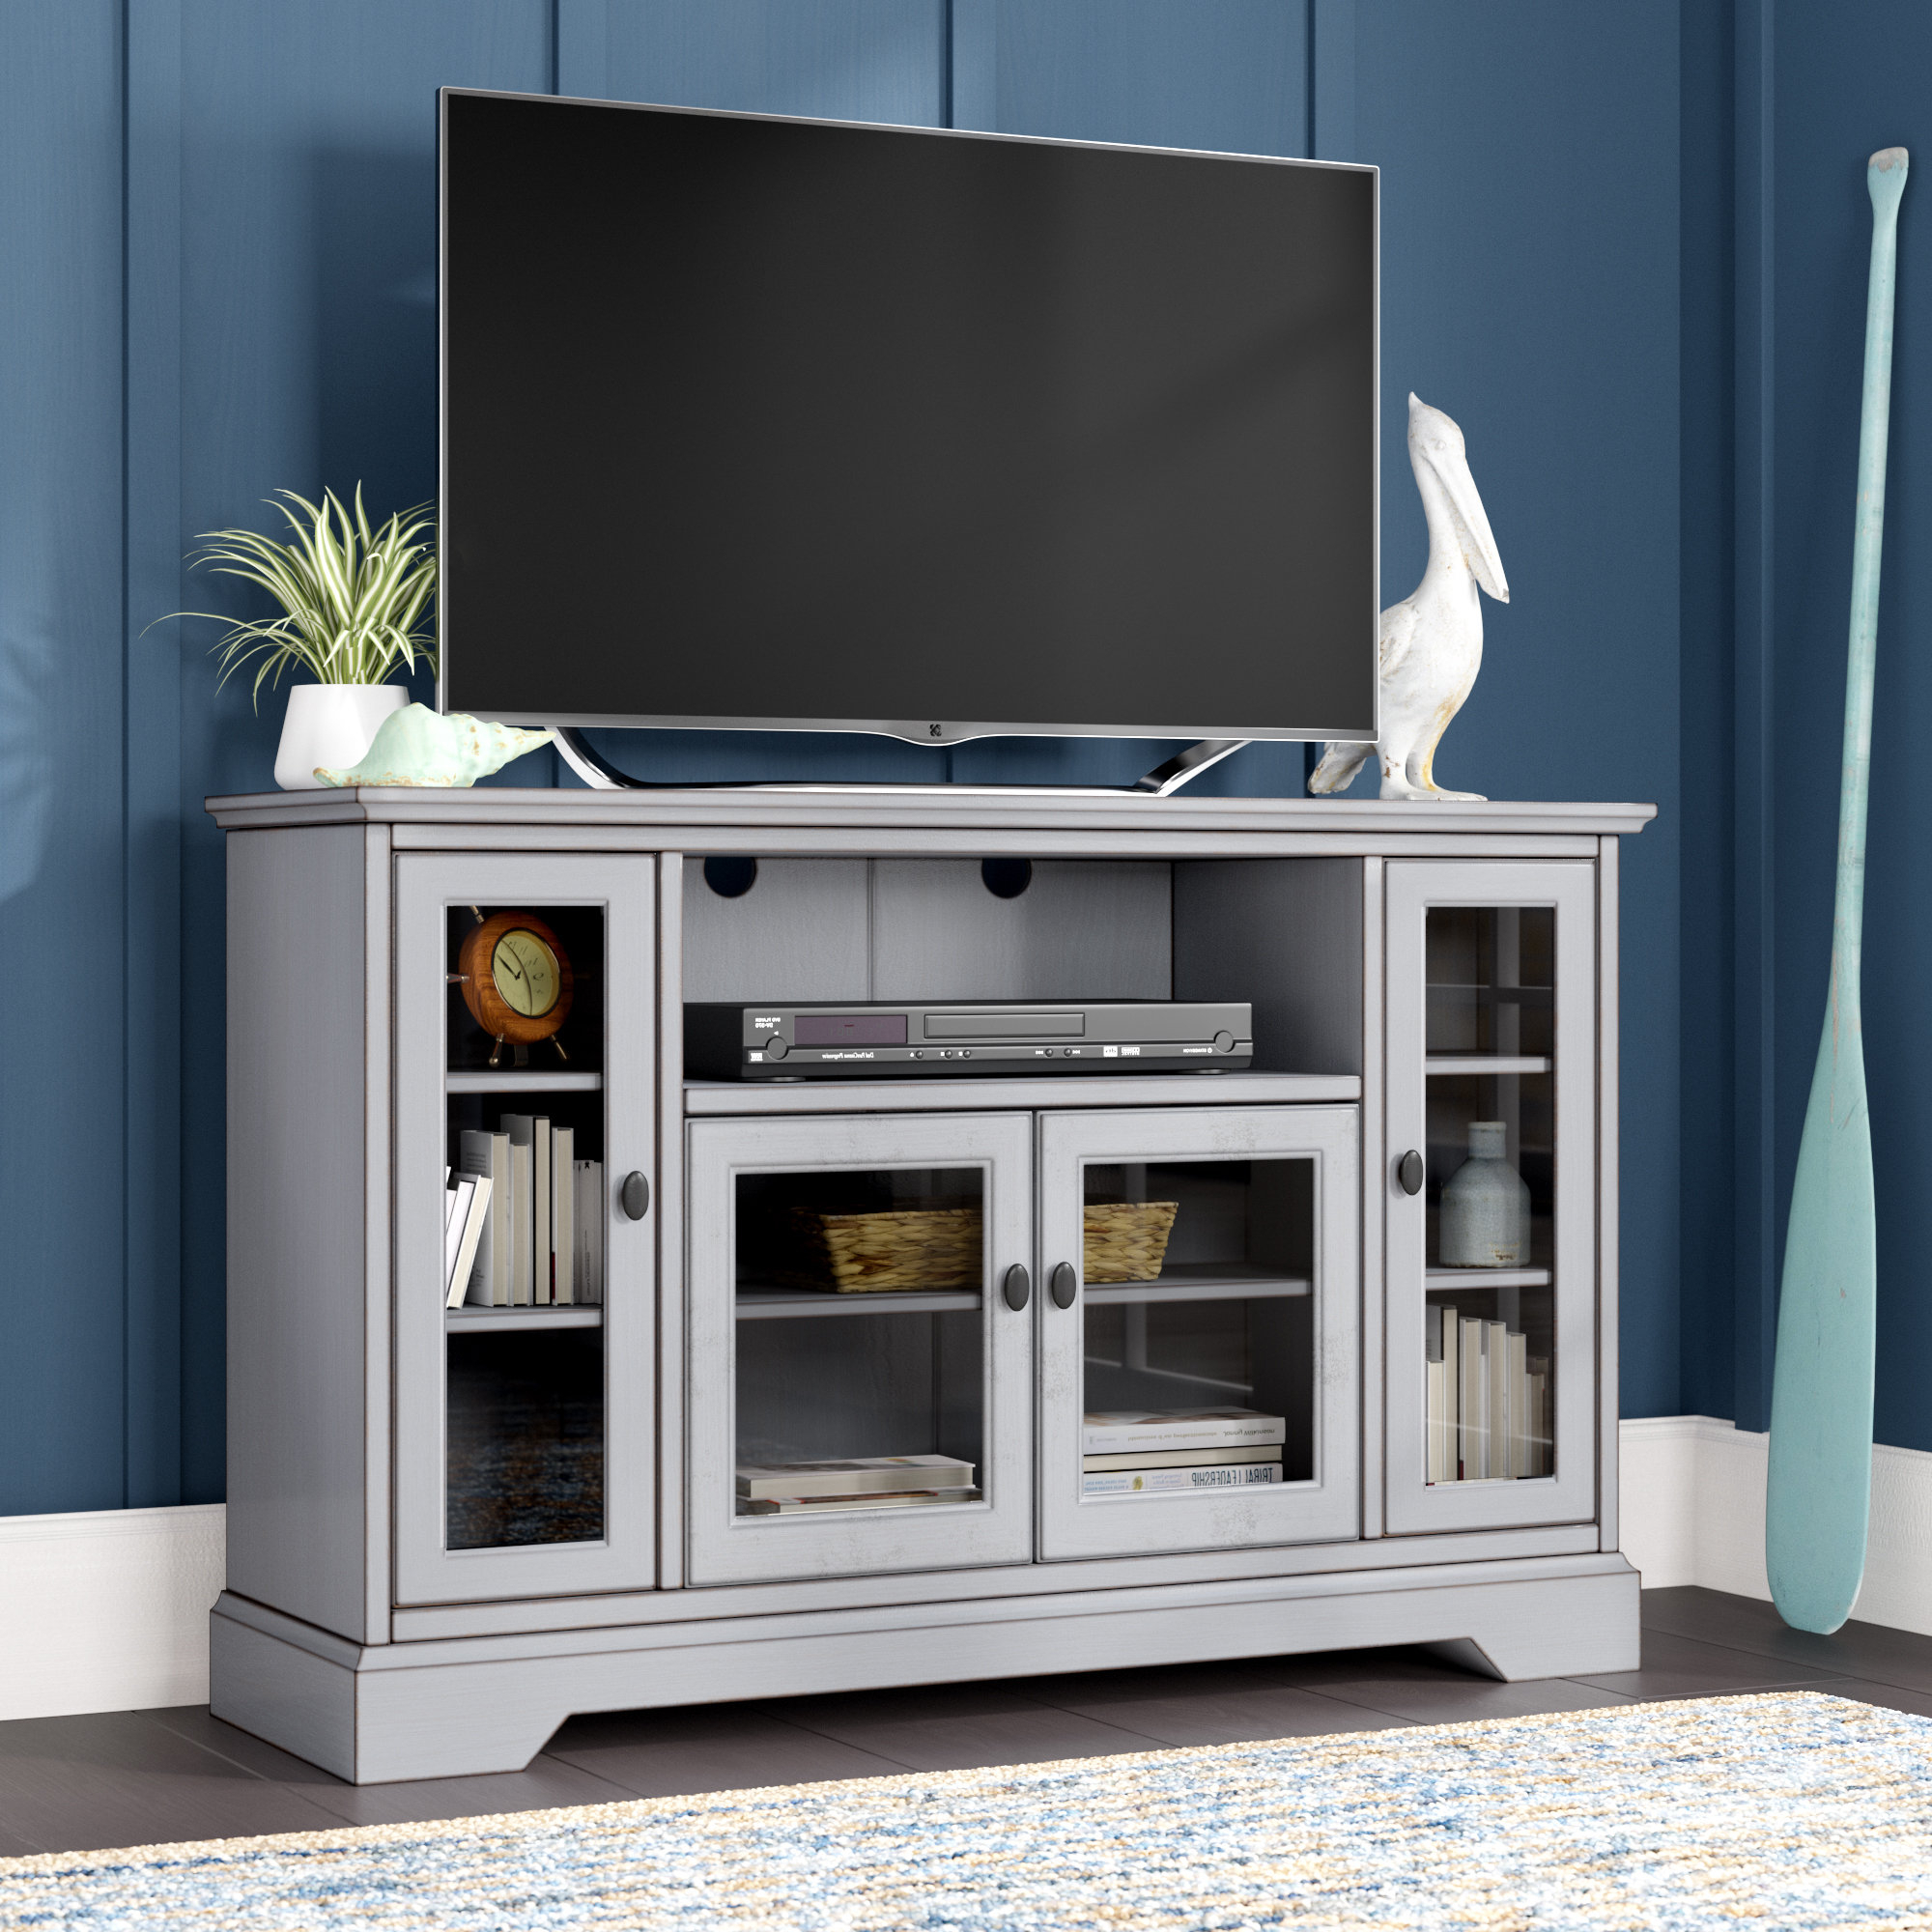 Tall Tv Stands You'll Love | Wayfair In Canyon 64 Inch Tv Stands (View 17 of 20)